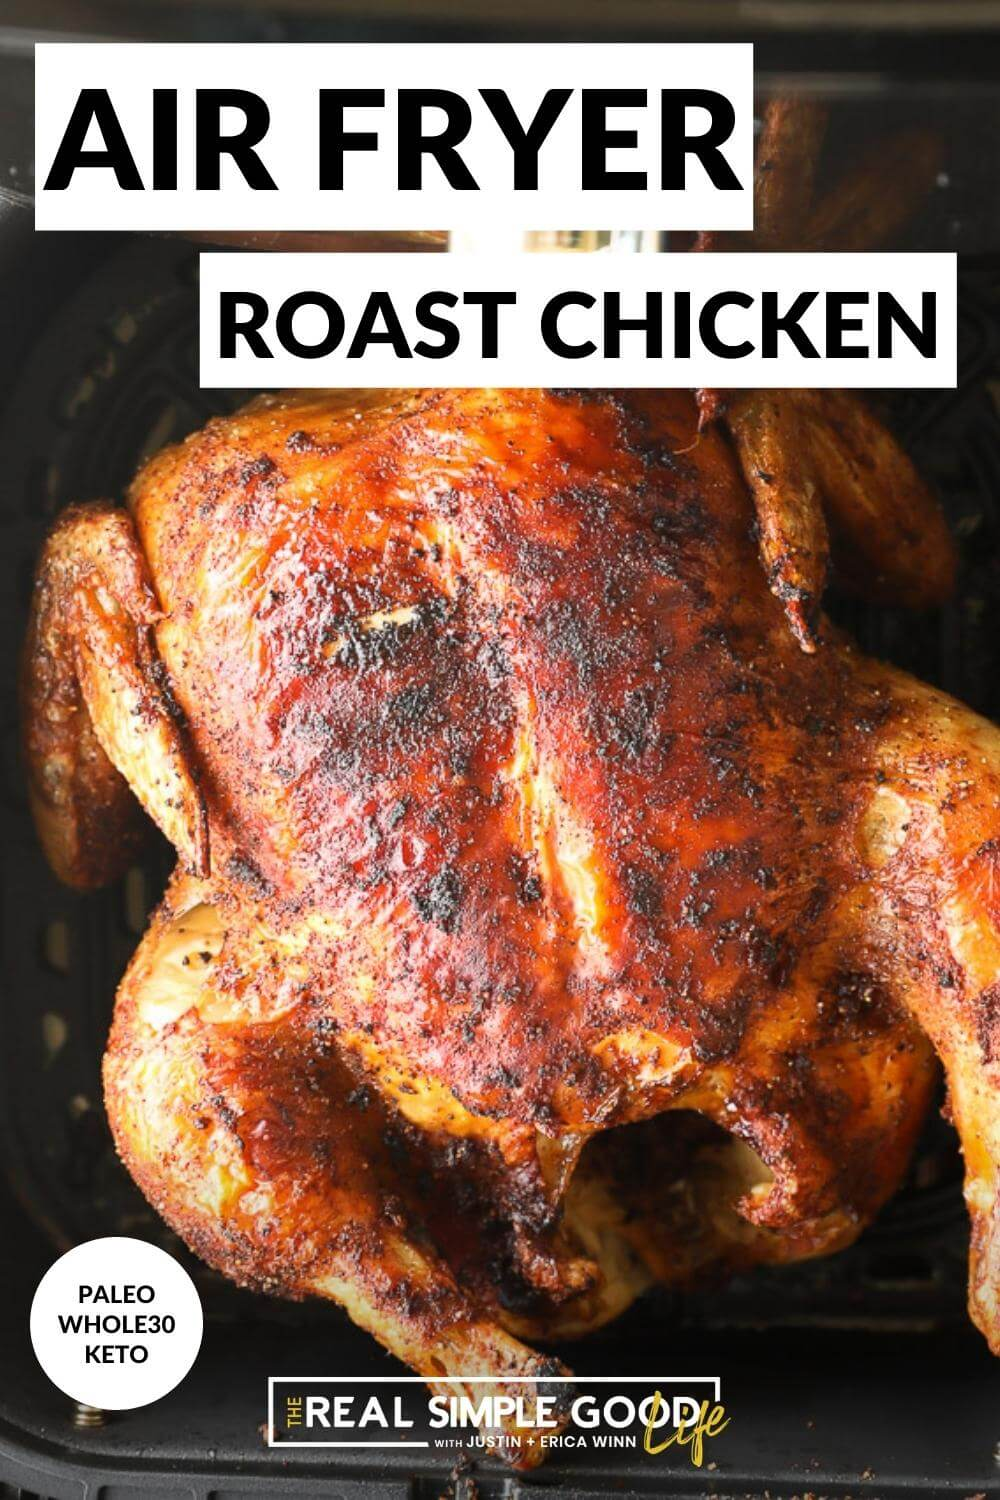 Close up image of roasted chicken in air fryer basket with text overlay on top